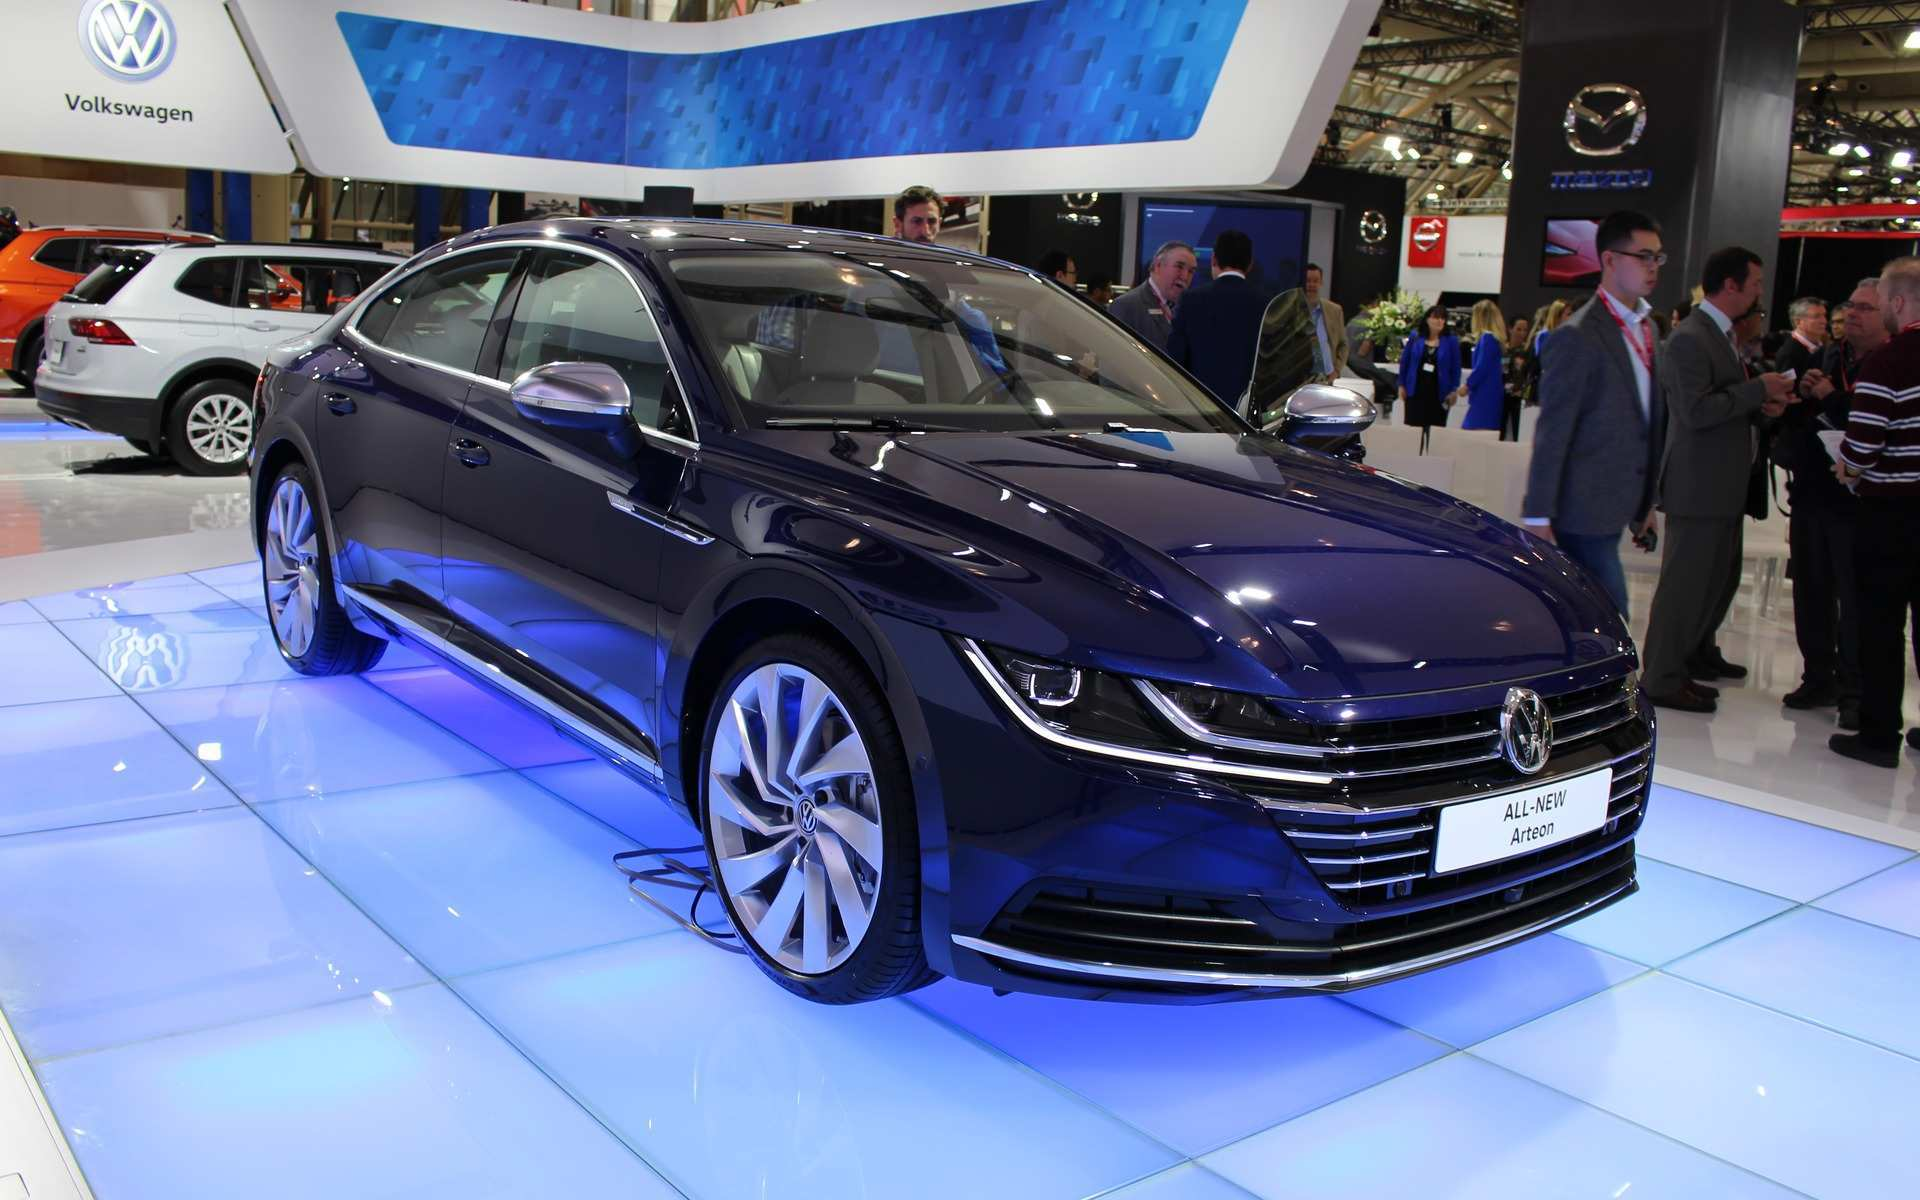 20 Concept of 2019 Vw Jetta Canada Performance and New Engine for 2019 Vw Jetta Canada